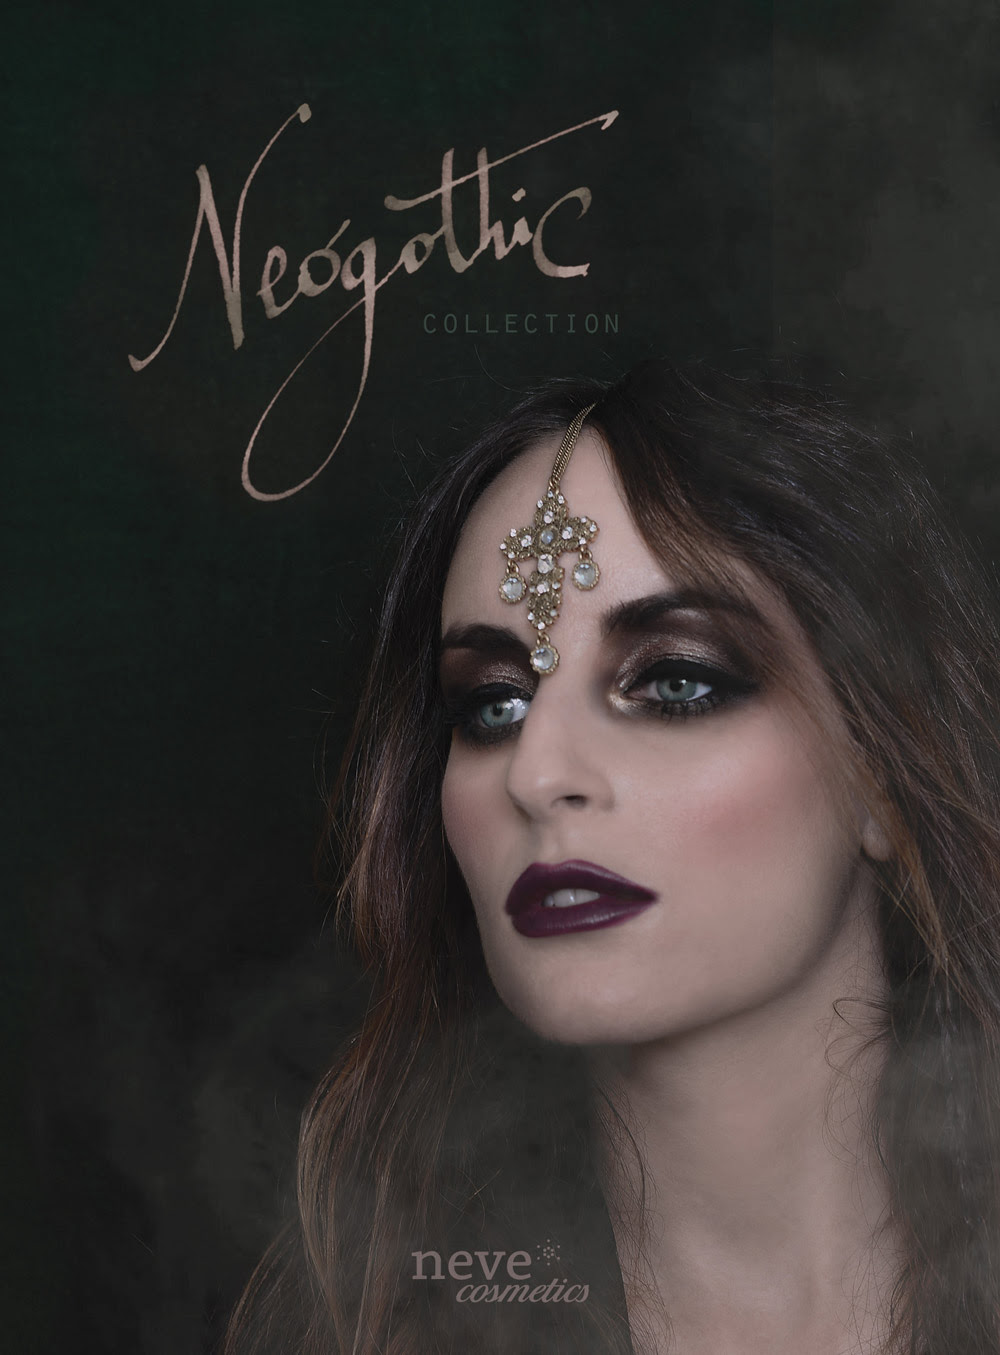 Neogothic Collection Neve Cosmetics